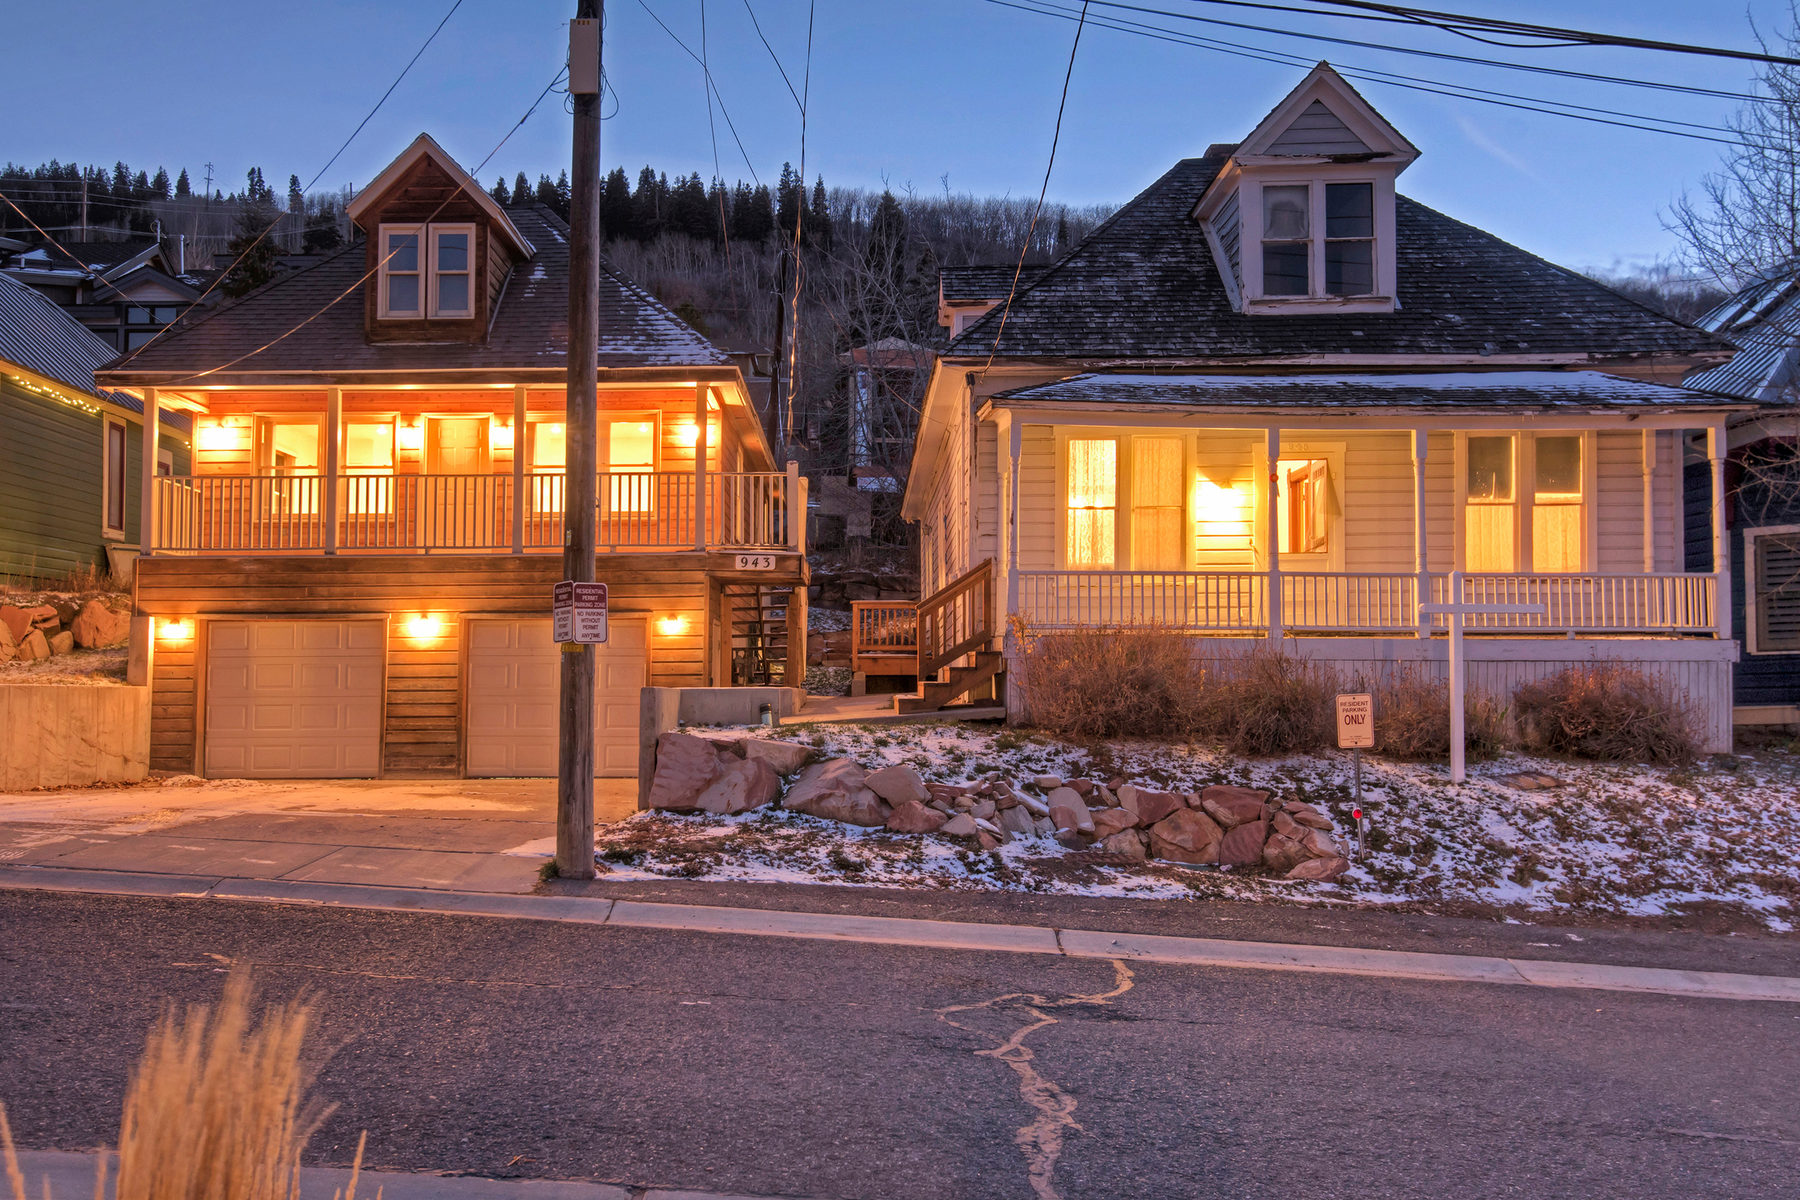 Maison unifamiliale pour l Vente à The Gardner Parcel - The Ultimate Old Town Development Opportunity! 945, 943 Norfolk Ave Park City, Utah, 84060 États-Unis